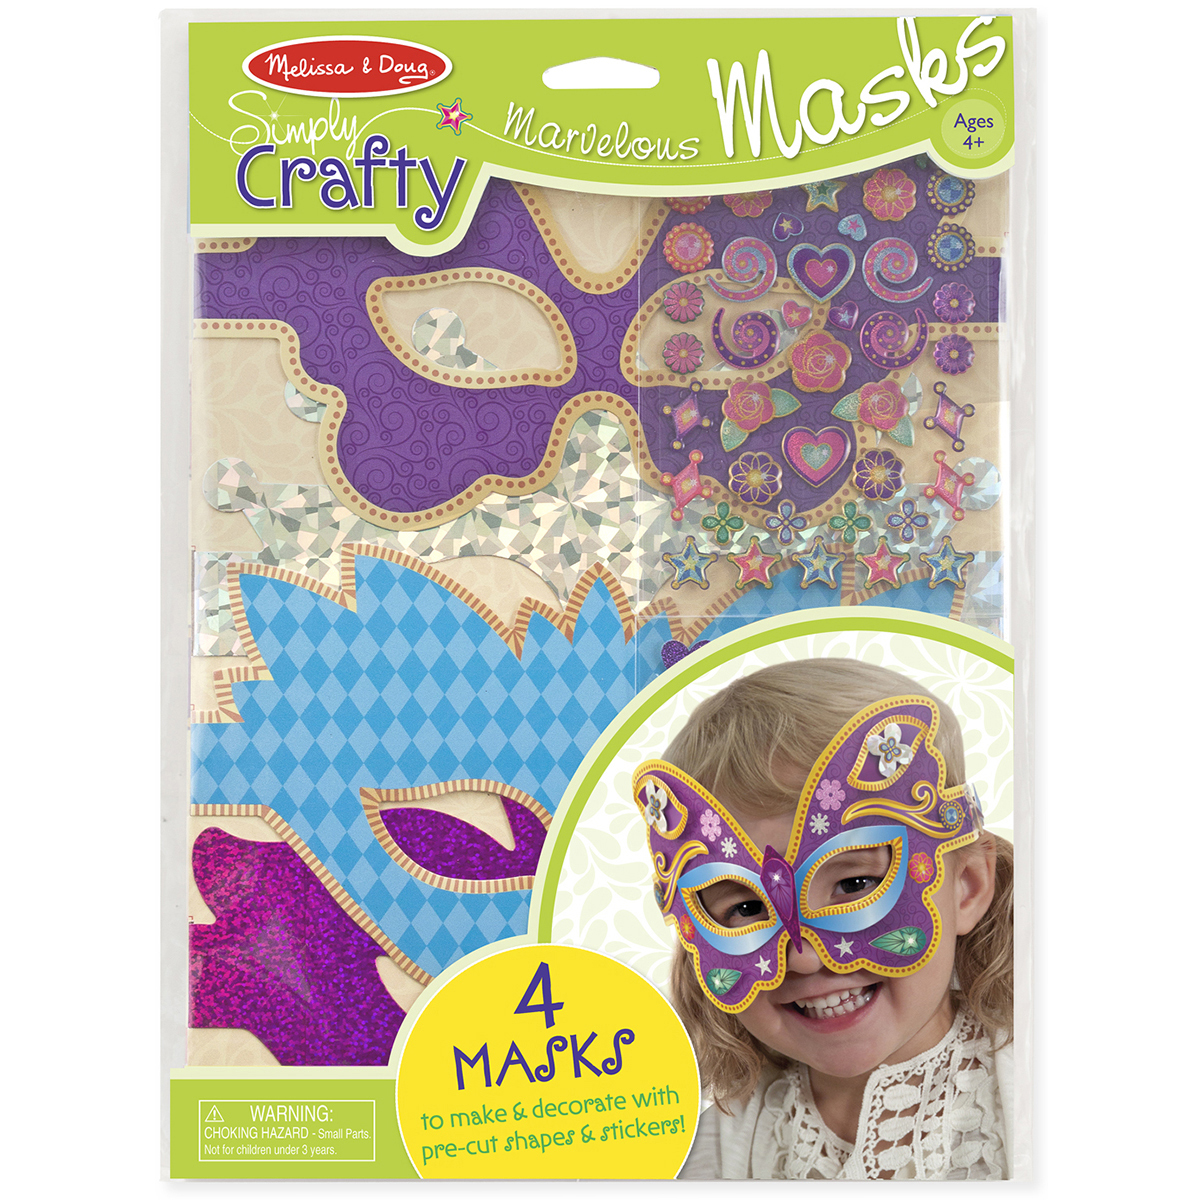 Simply Crafty Marvelous Masks Kit-Makes 4